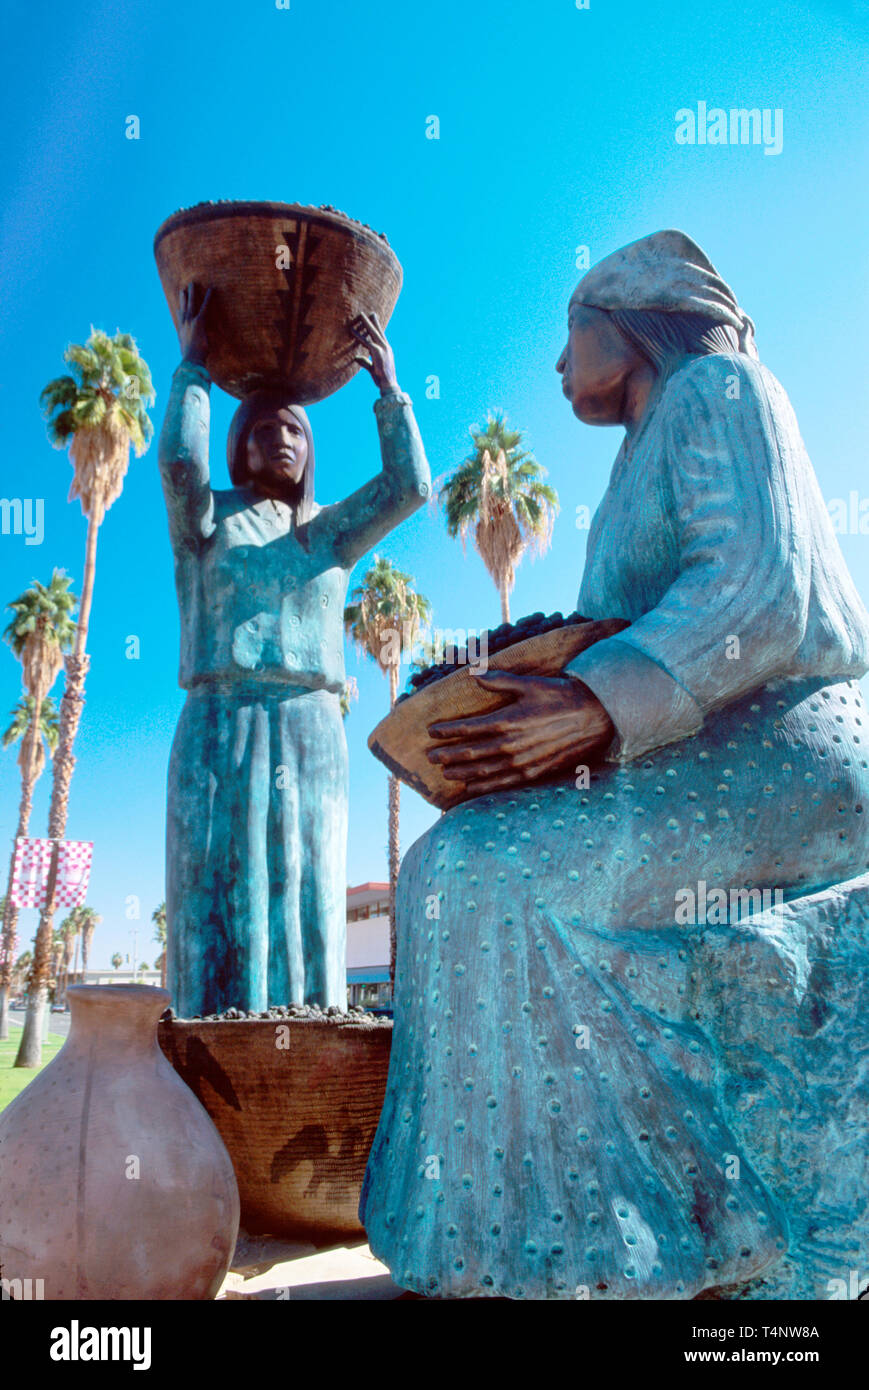 California Palm Springs Tahquitz Canyon Drive Agua Caliente Women statues - Stock Image